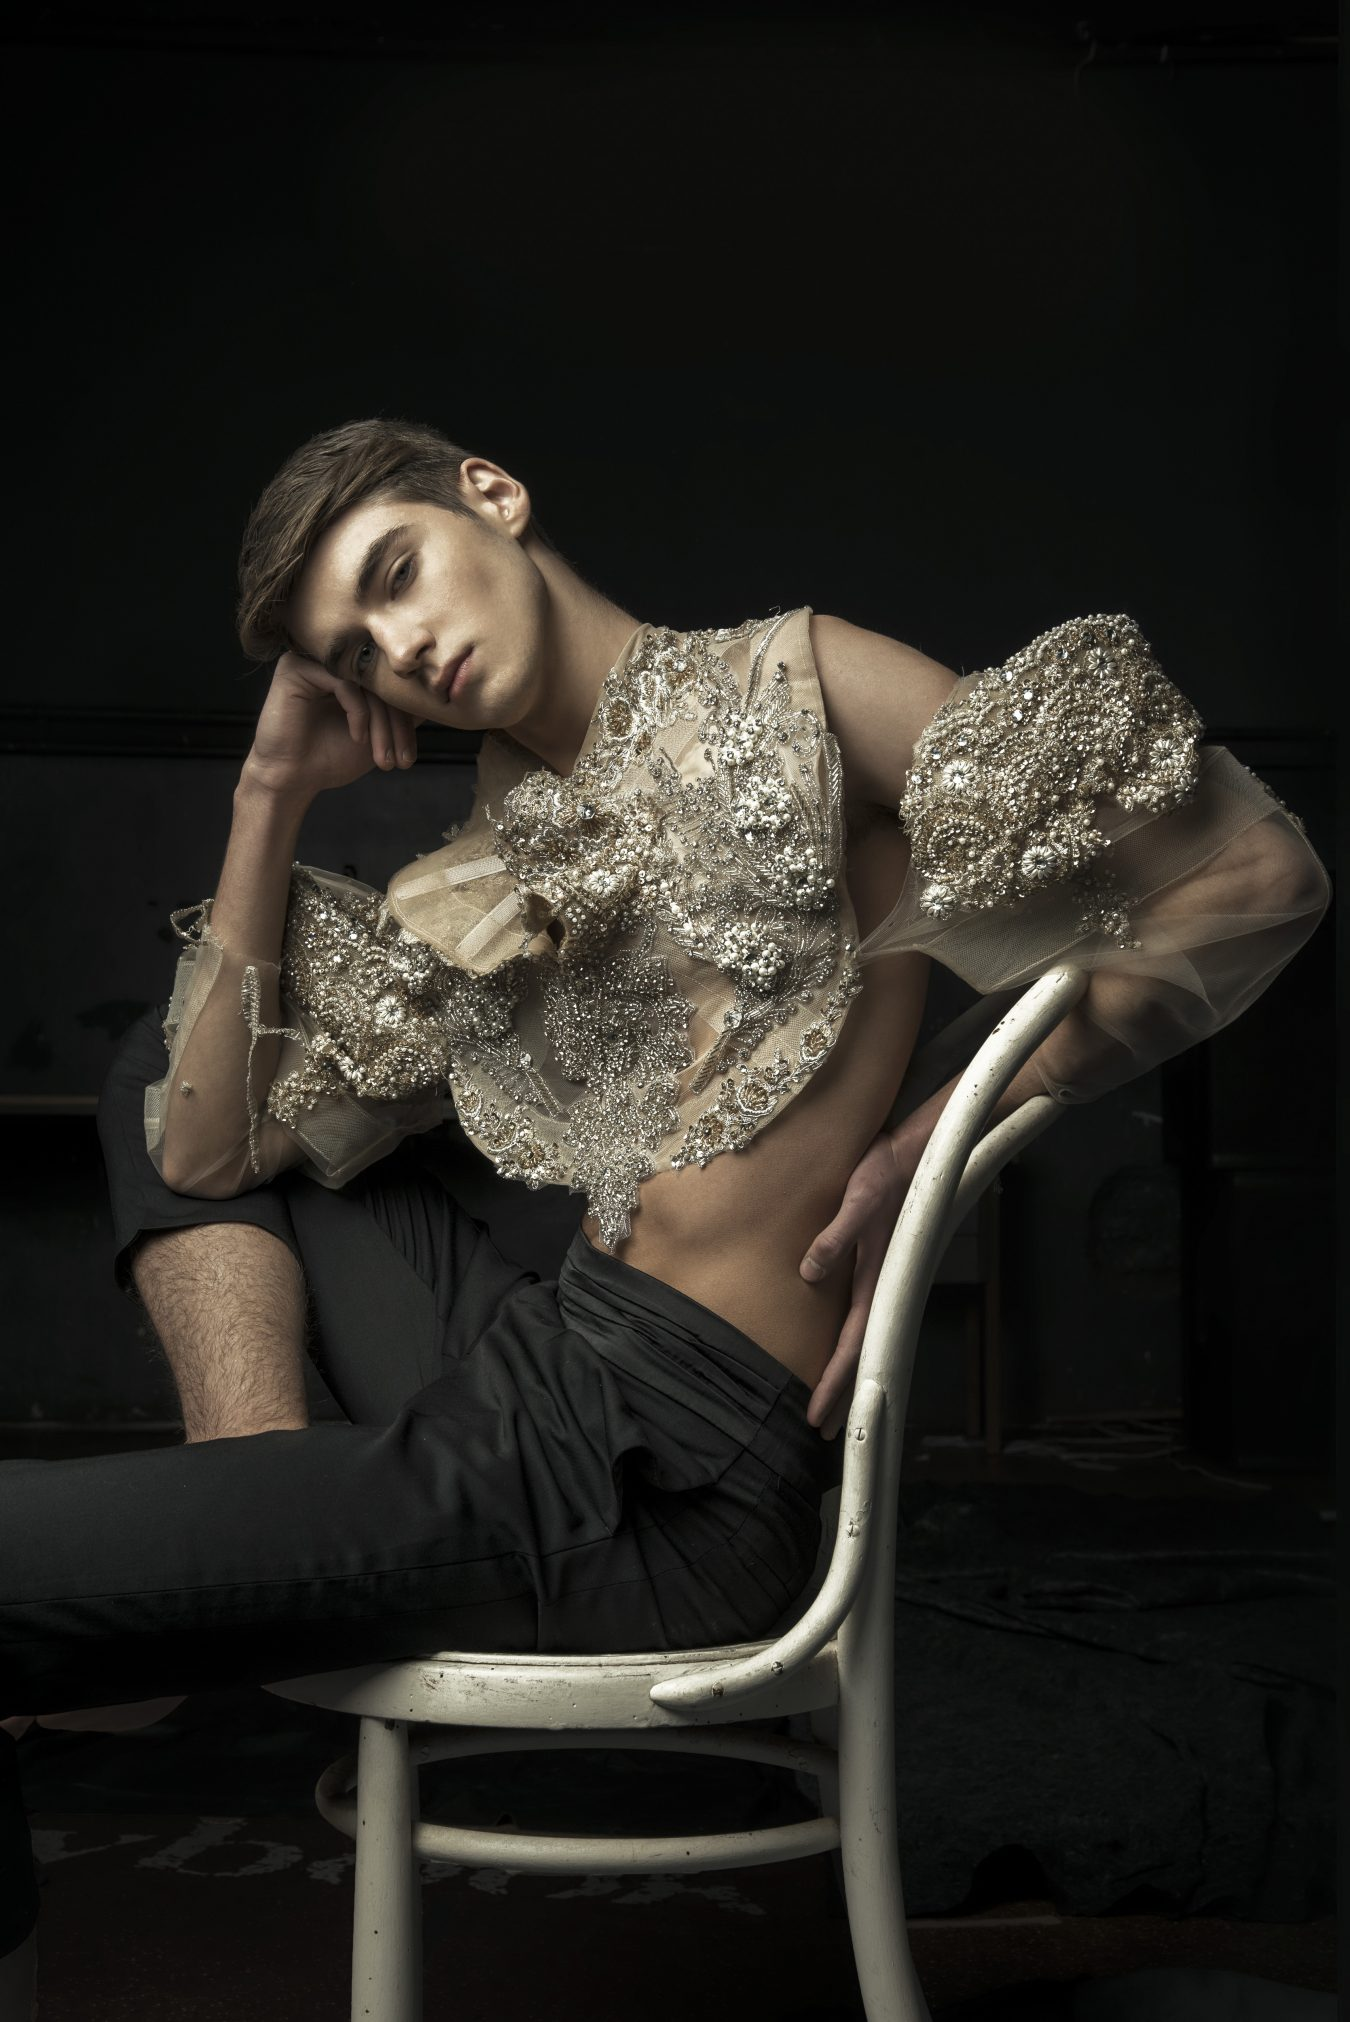 Pink Prince - Fashion Editorial by Filip Koludrovic and Petar Trbovic